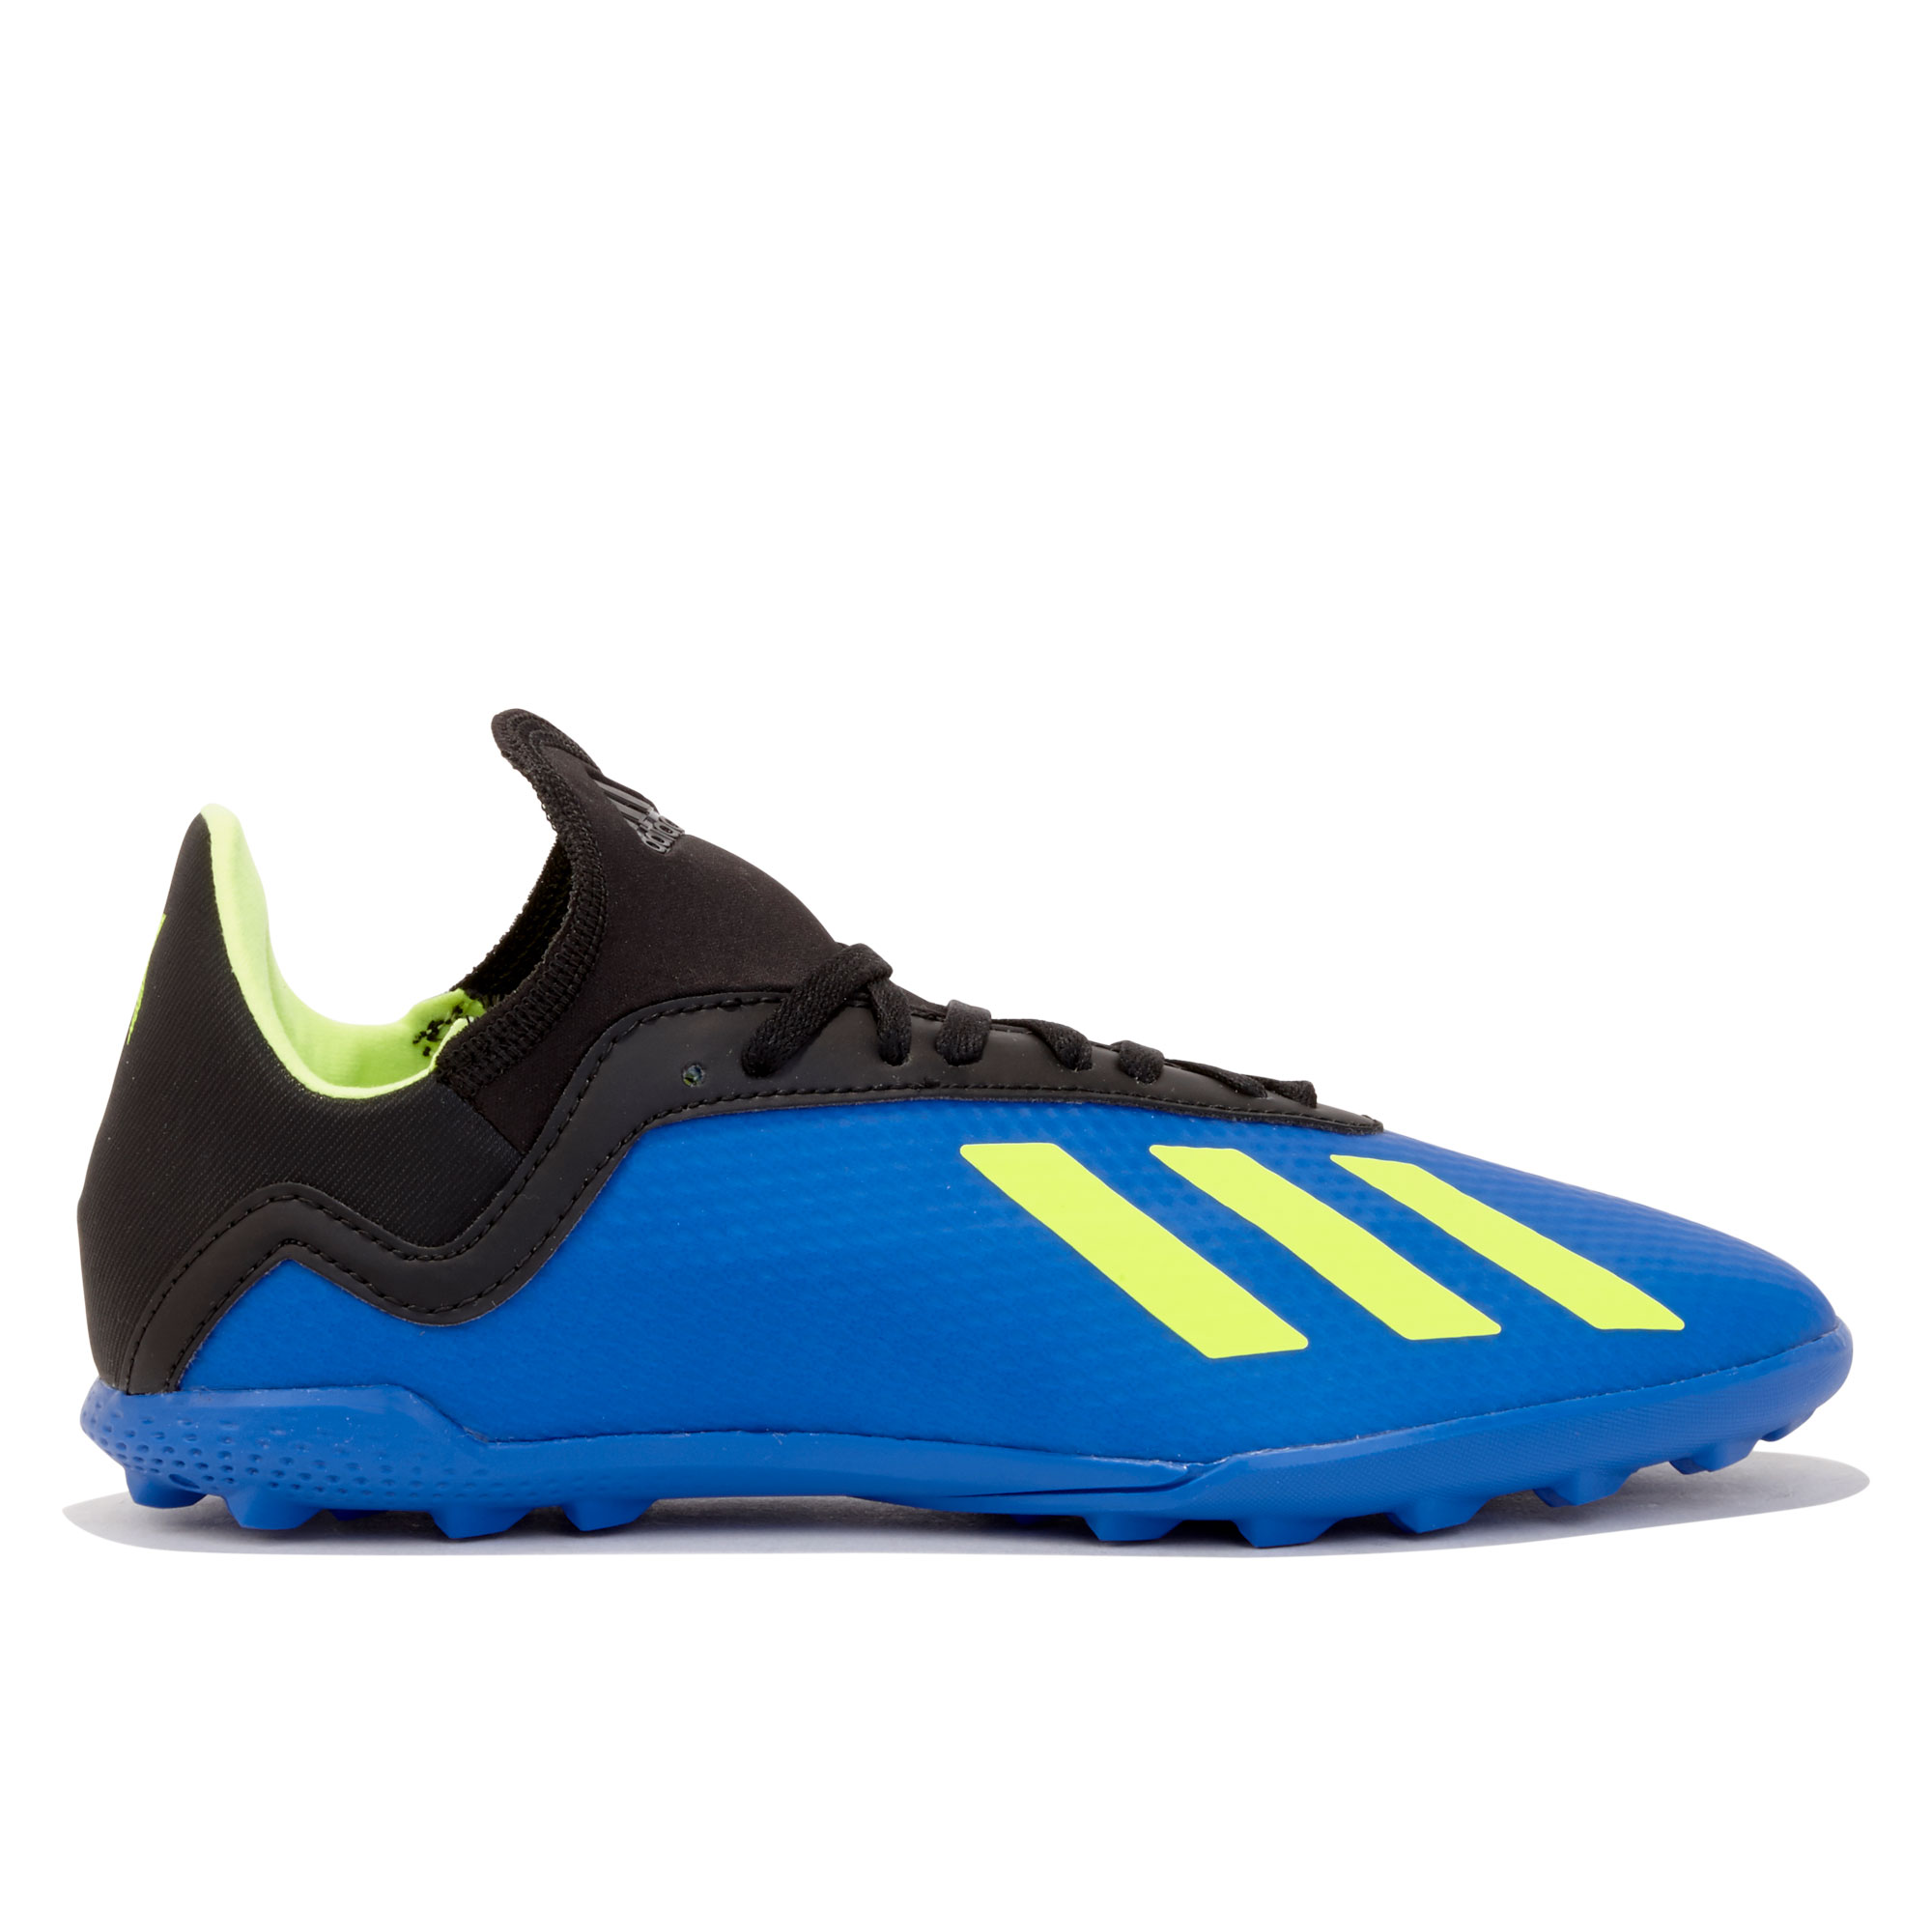 Image of adidas X Tango 18.3 Astroturf Trainers - Blue - Kids